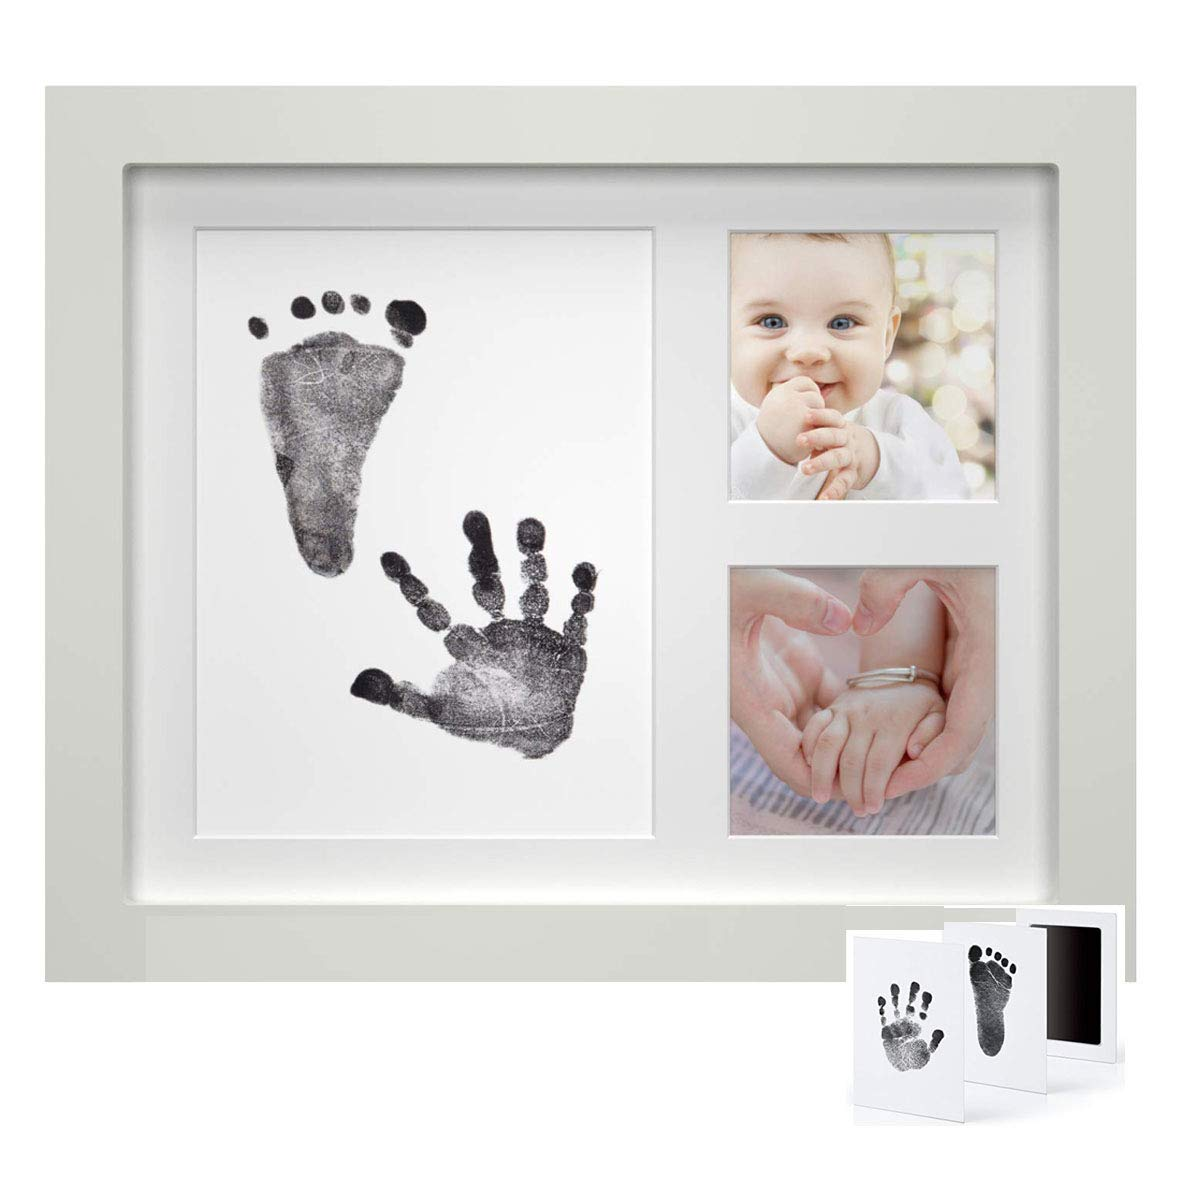 Dproptel Unique Baby Handprint and Footprint Photo Frame Kit Baby Shower Gifts for Newborn Boys and Girls with Prints Paper and Clean Touch Ink Pad to Create Baby Hand and Foot Prints Brown